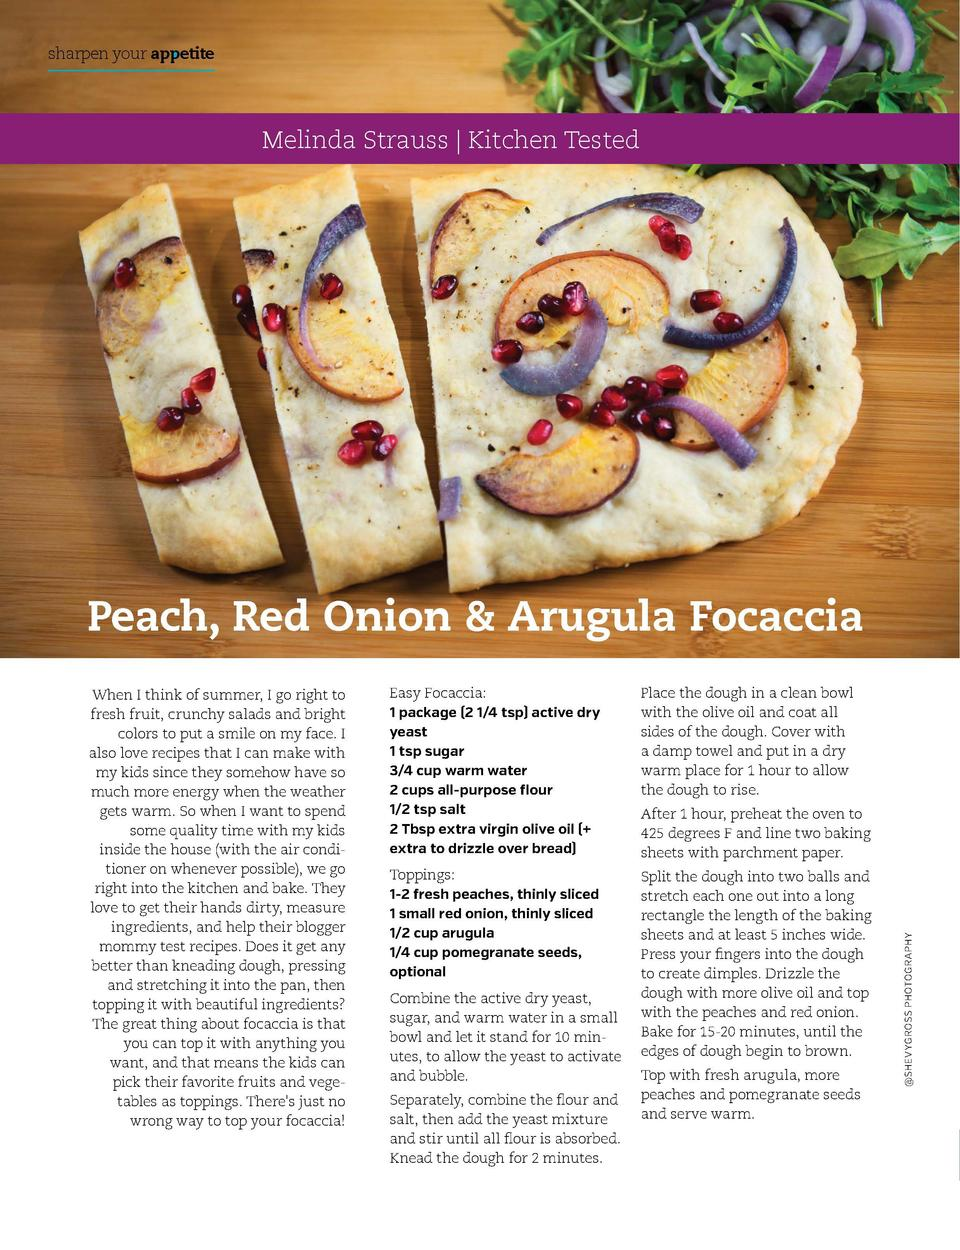 sharpen your appetite  sharpen your appetite  Melinda Strauss   Kitchen Tested  Peach, Red Onion   Arugula Focaccia Easy F...